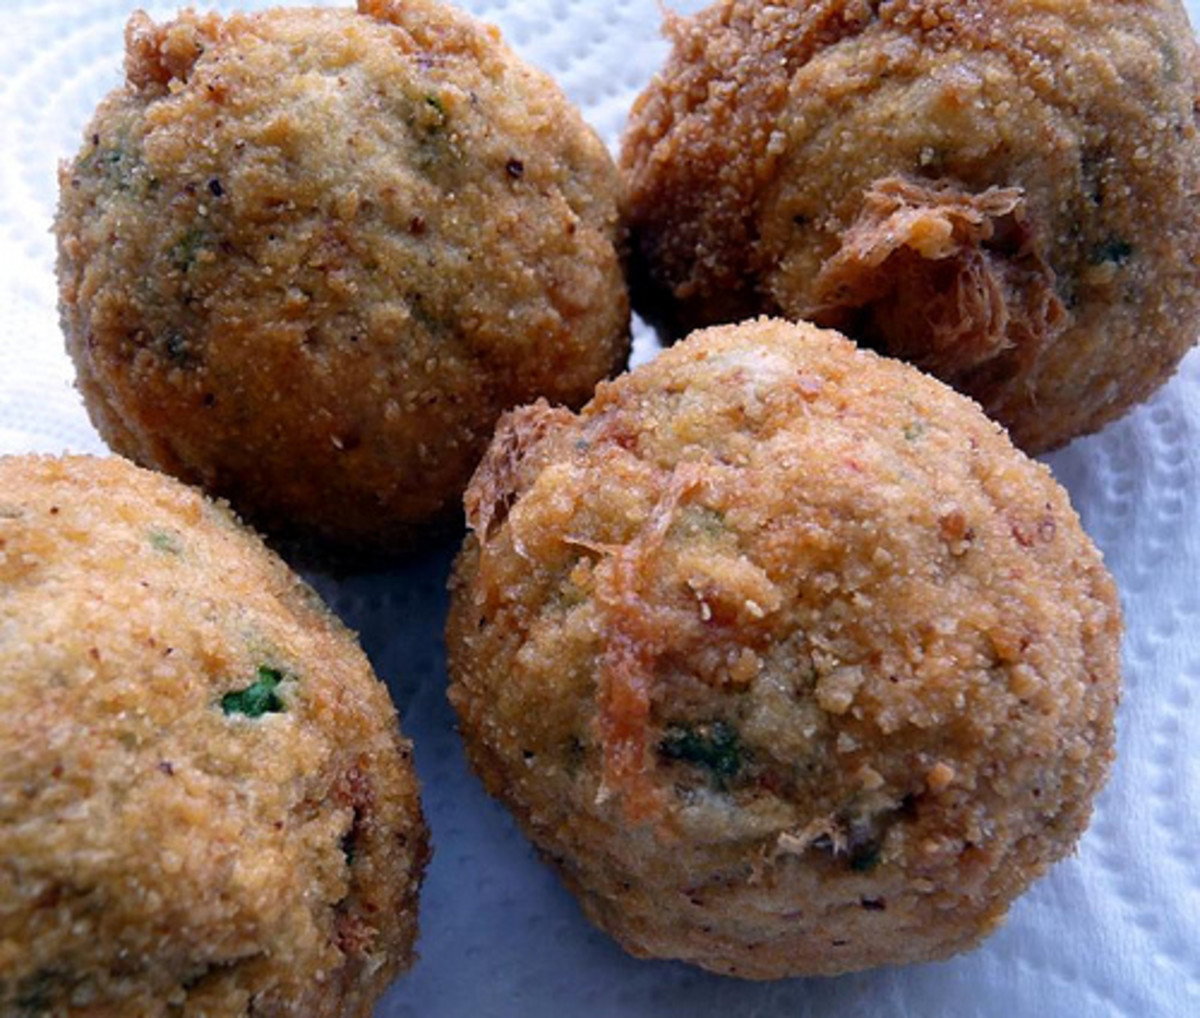 Instead of crab cakes, crab balls!